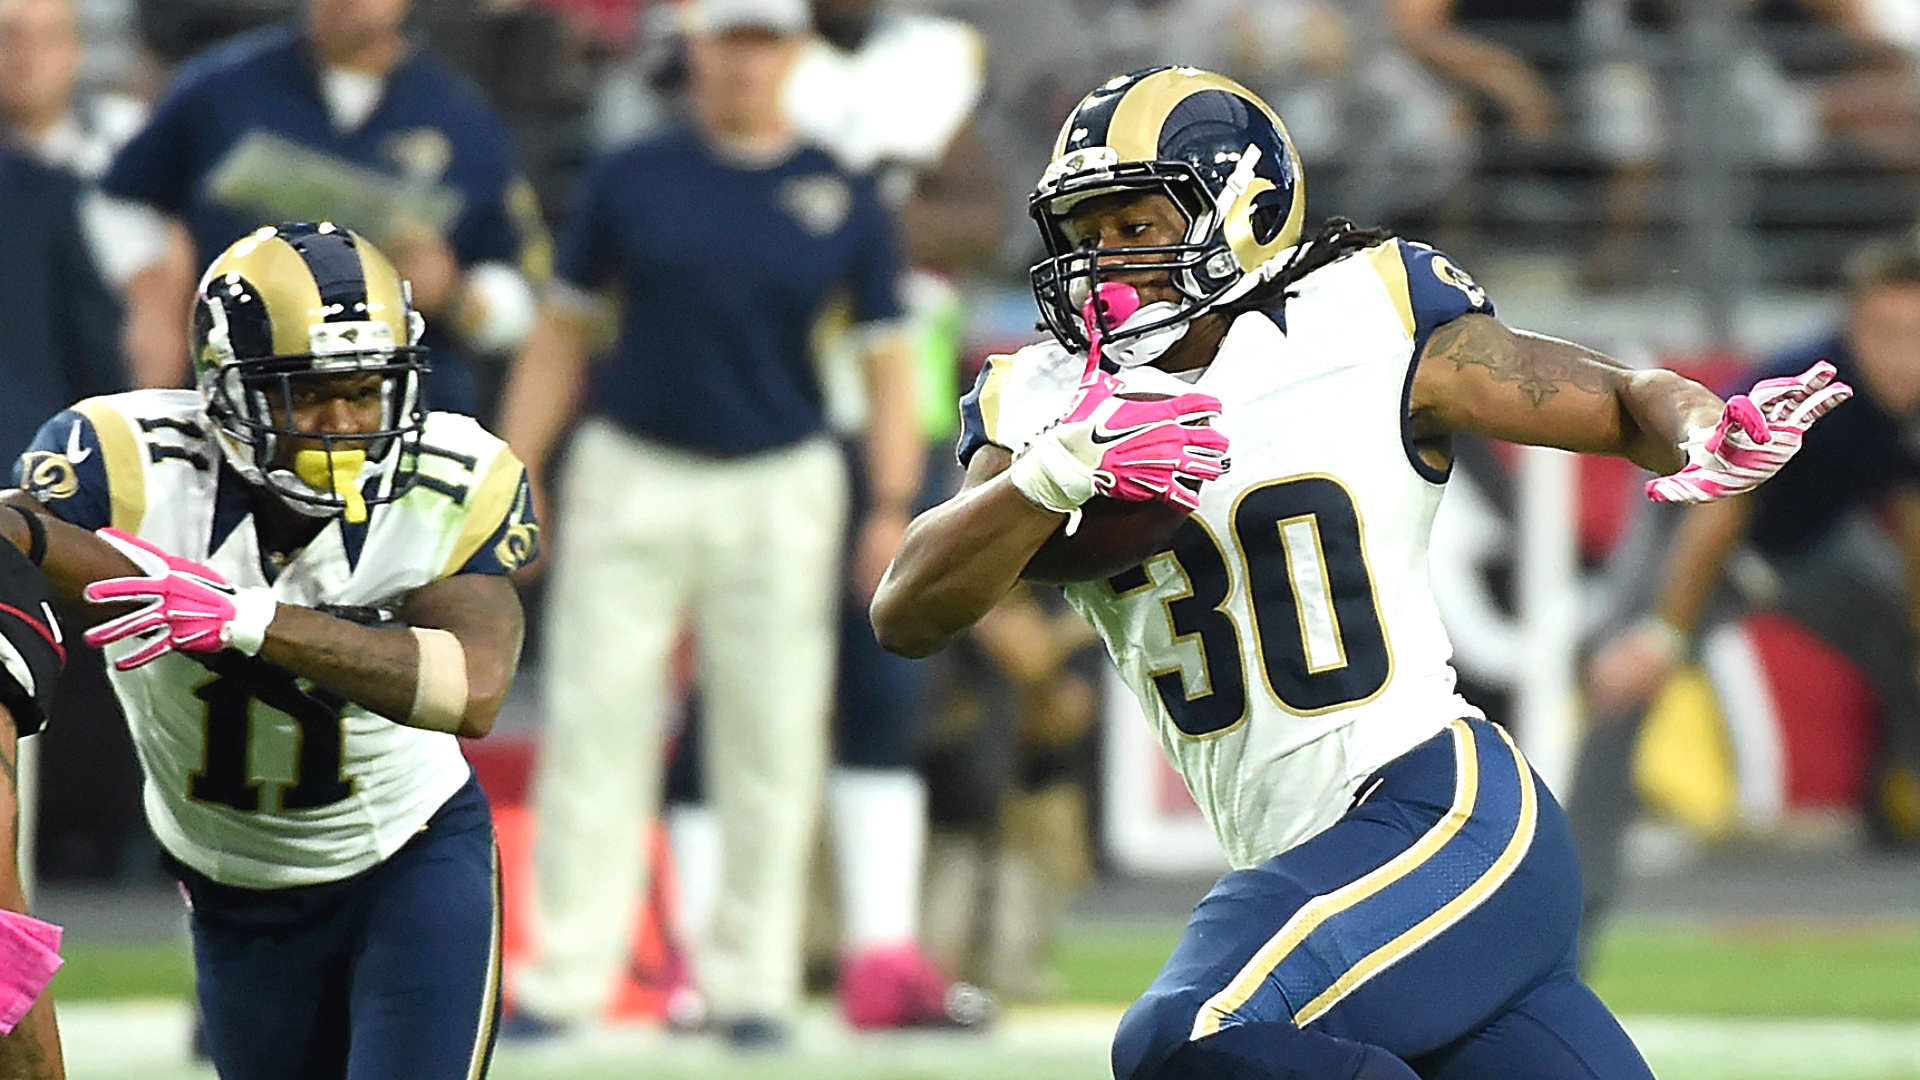 1920x1080 Rams defense stifles high-scoring Cardinals; Todd Gurley breaks out | NFL |  Sporting News